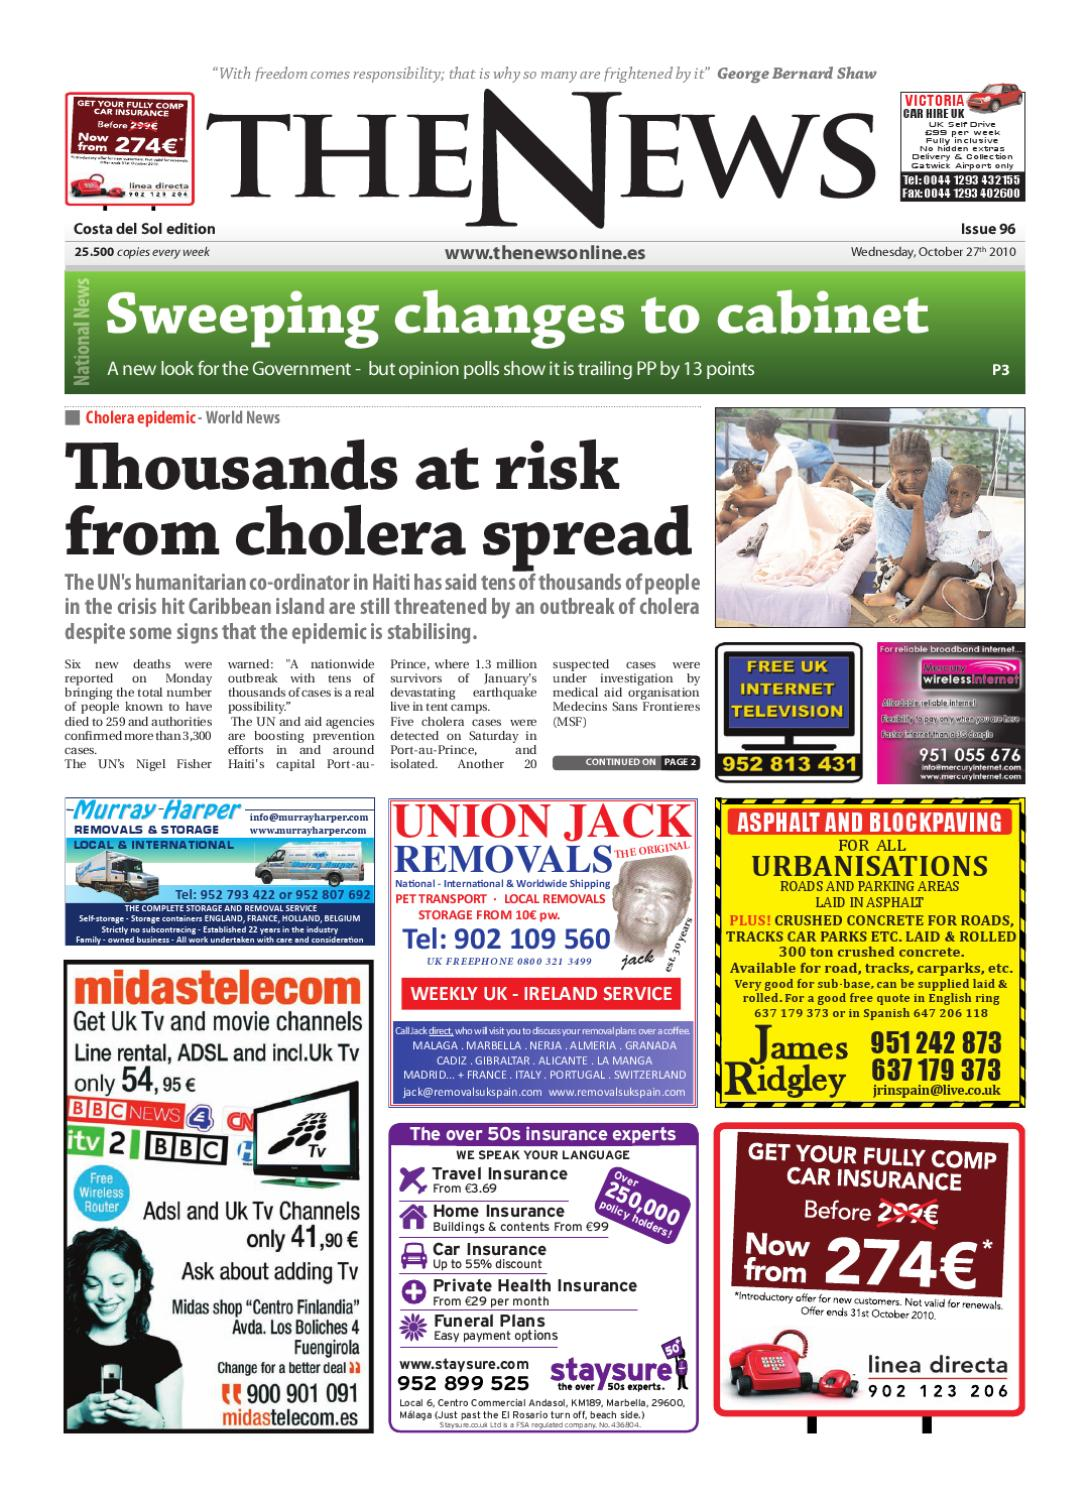 ad7c6092758bb The News Newspaper - Issue 096 (Date 27-10-10) by The News Newspaper - issuu